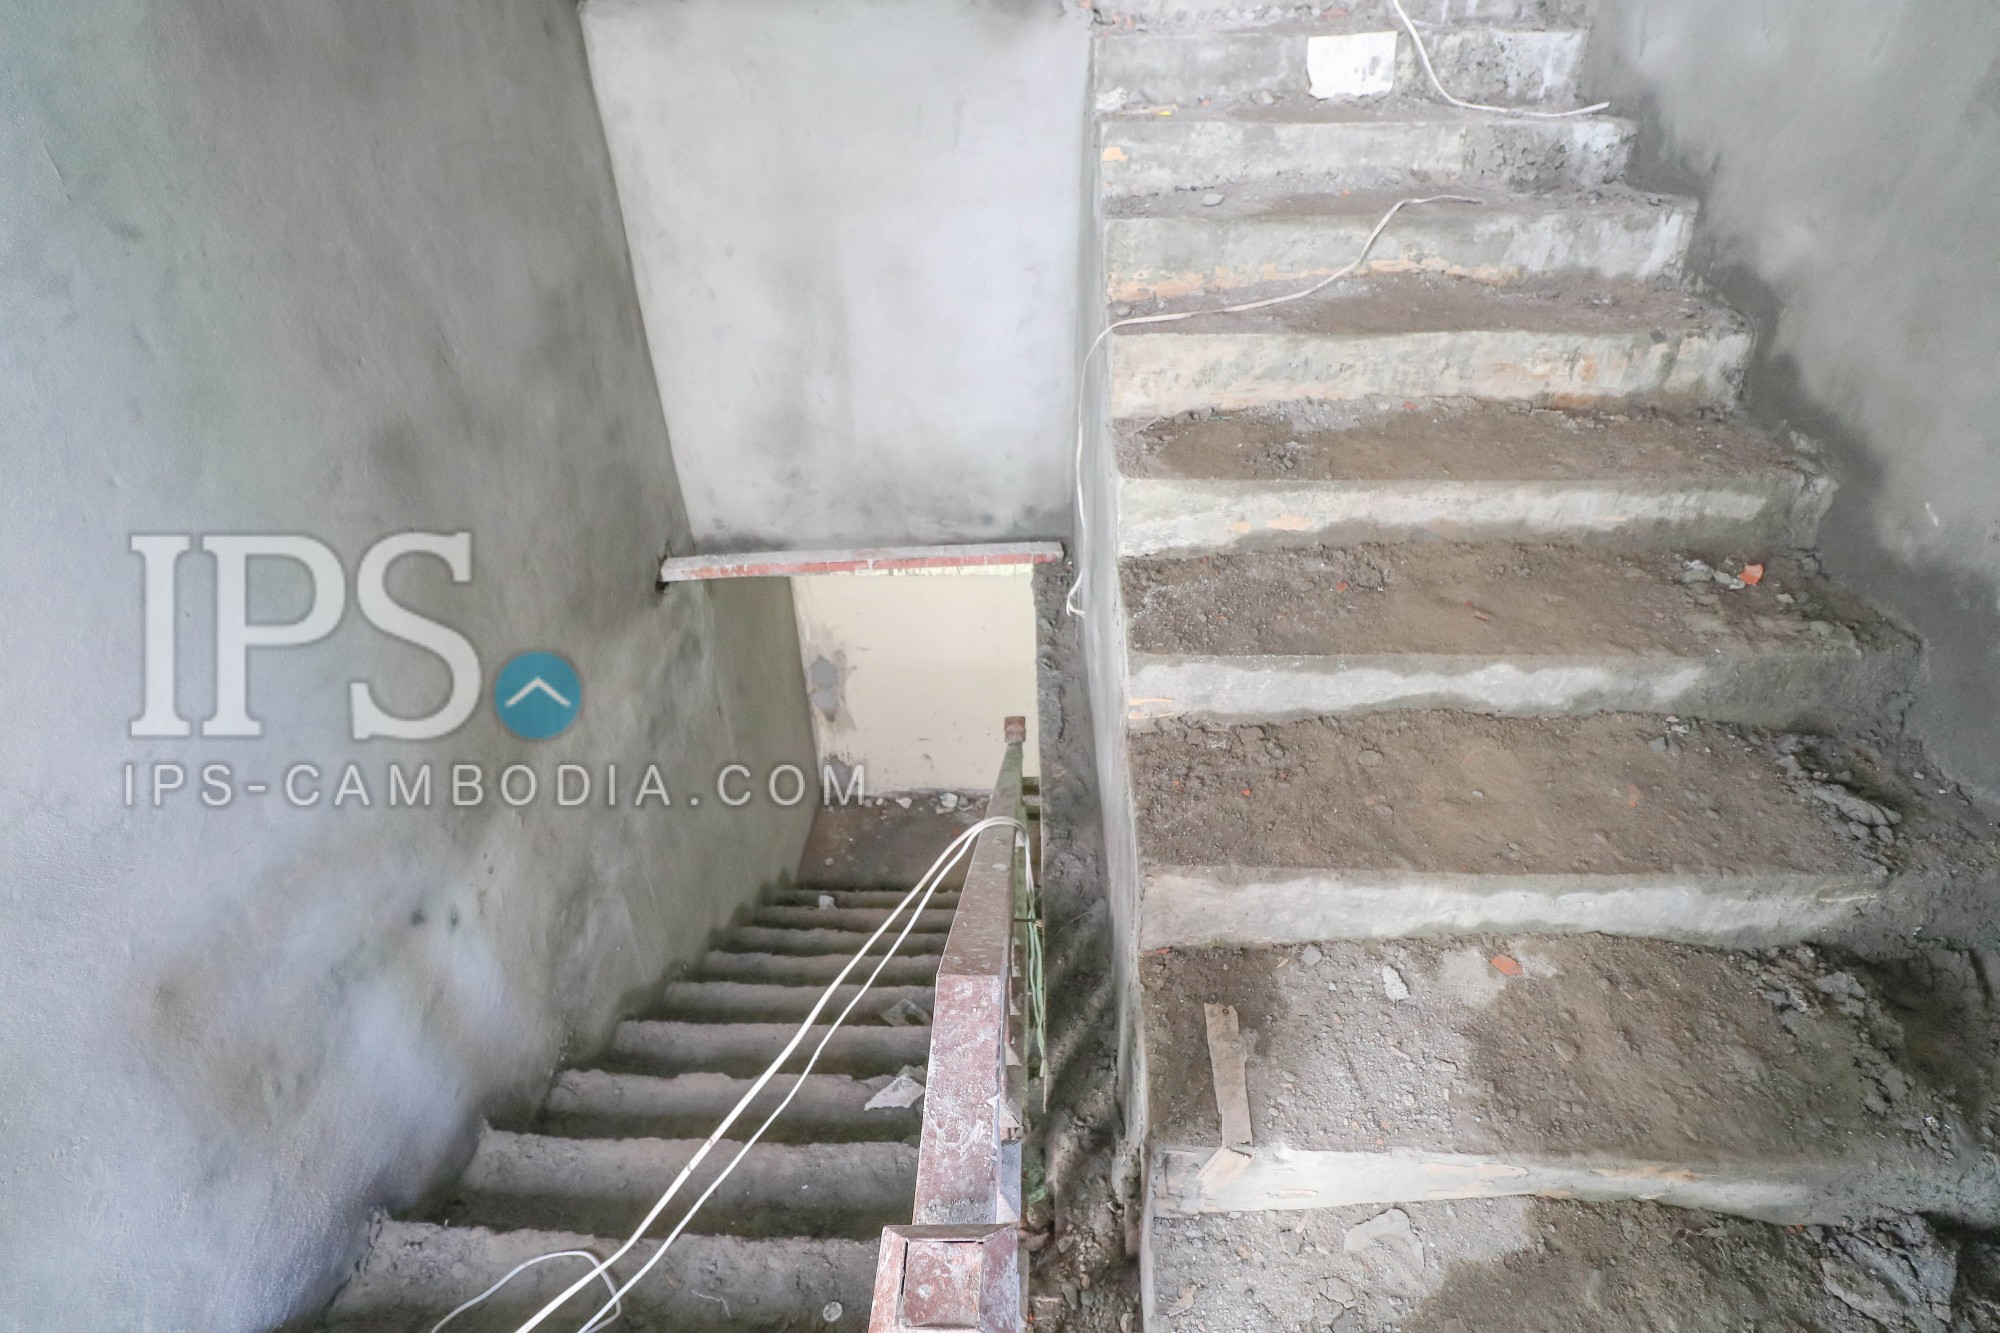 12 Bedrooms House For Rent - Sihanoukville